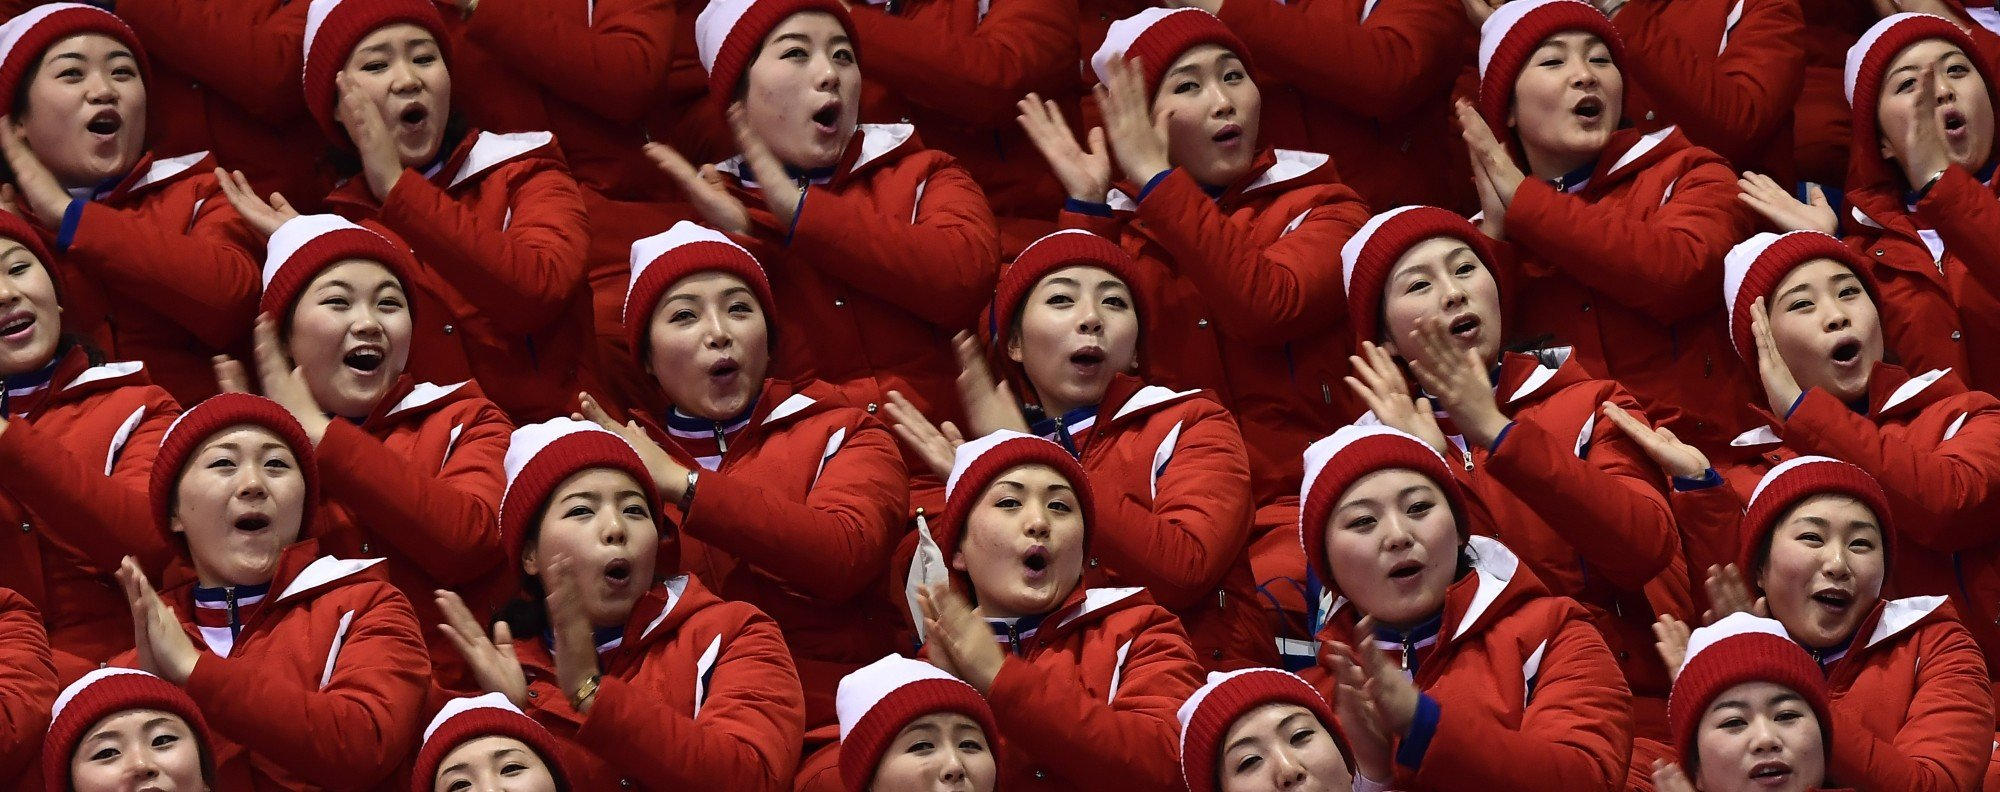 Army of beauties. Photo: AFP